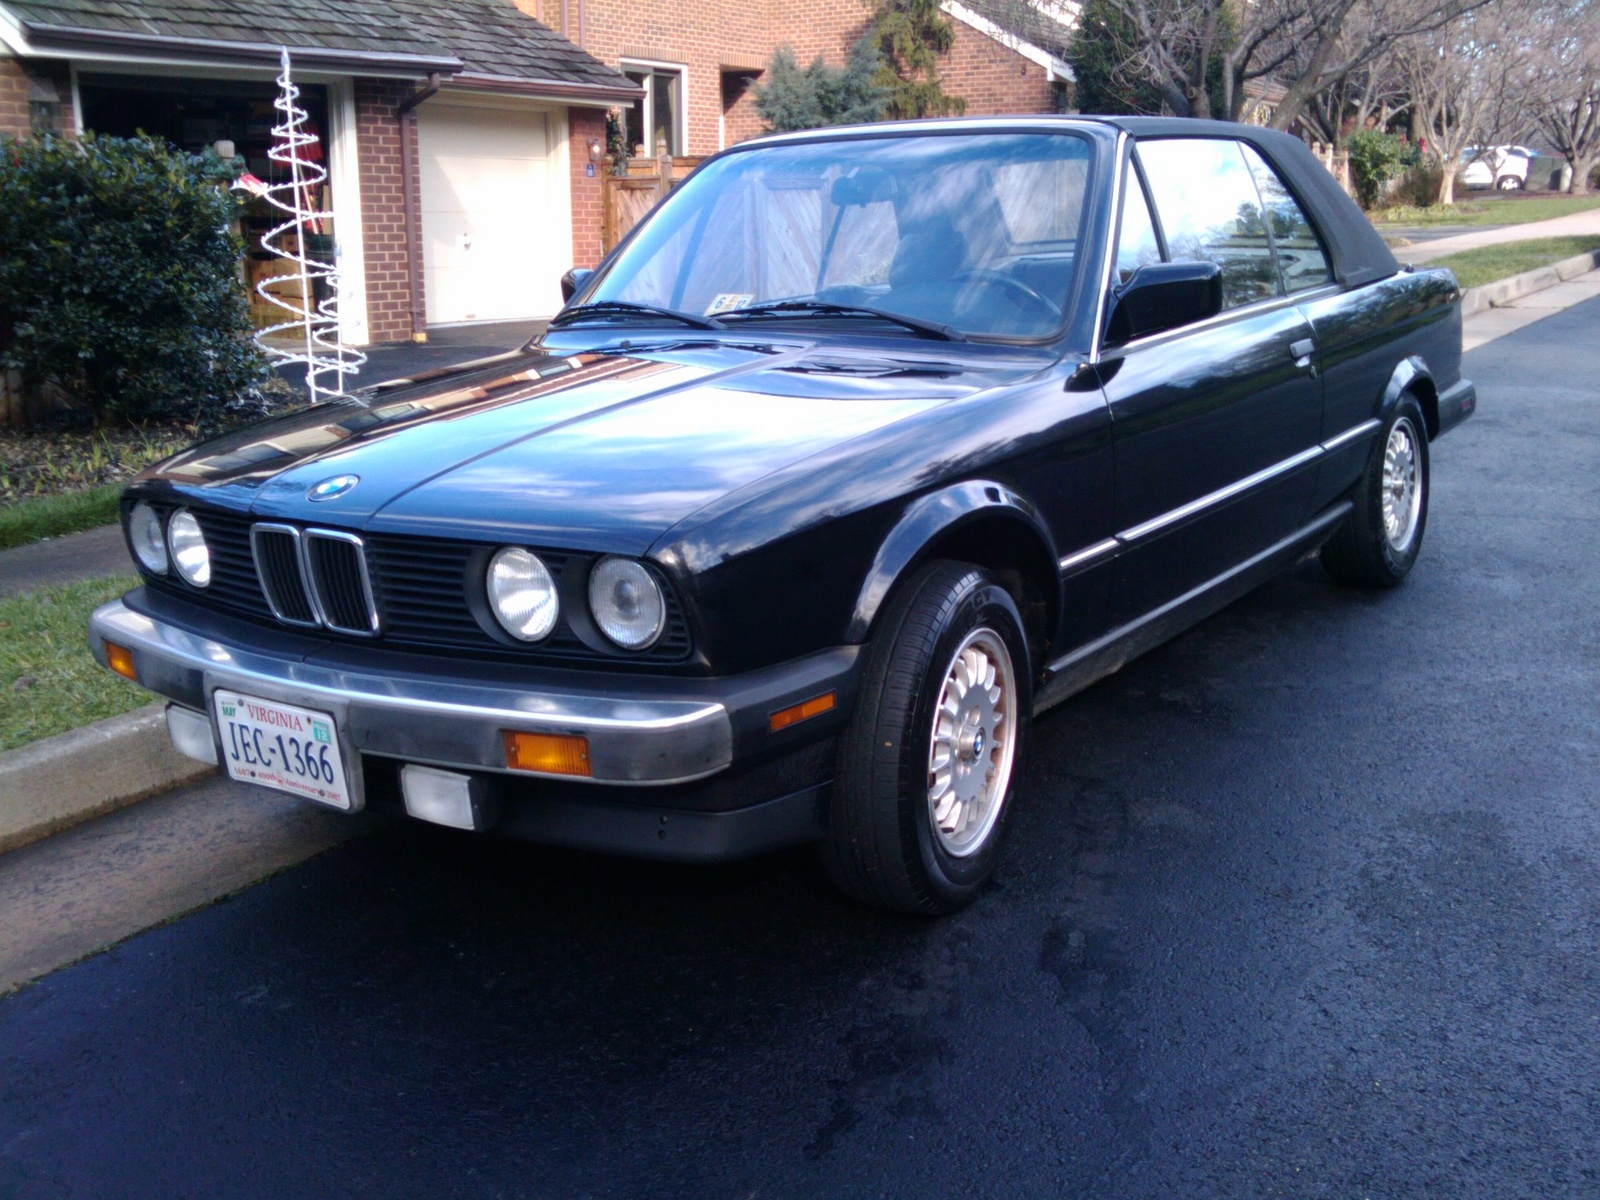 BMW 3 series 324d 1989 photo - 5